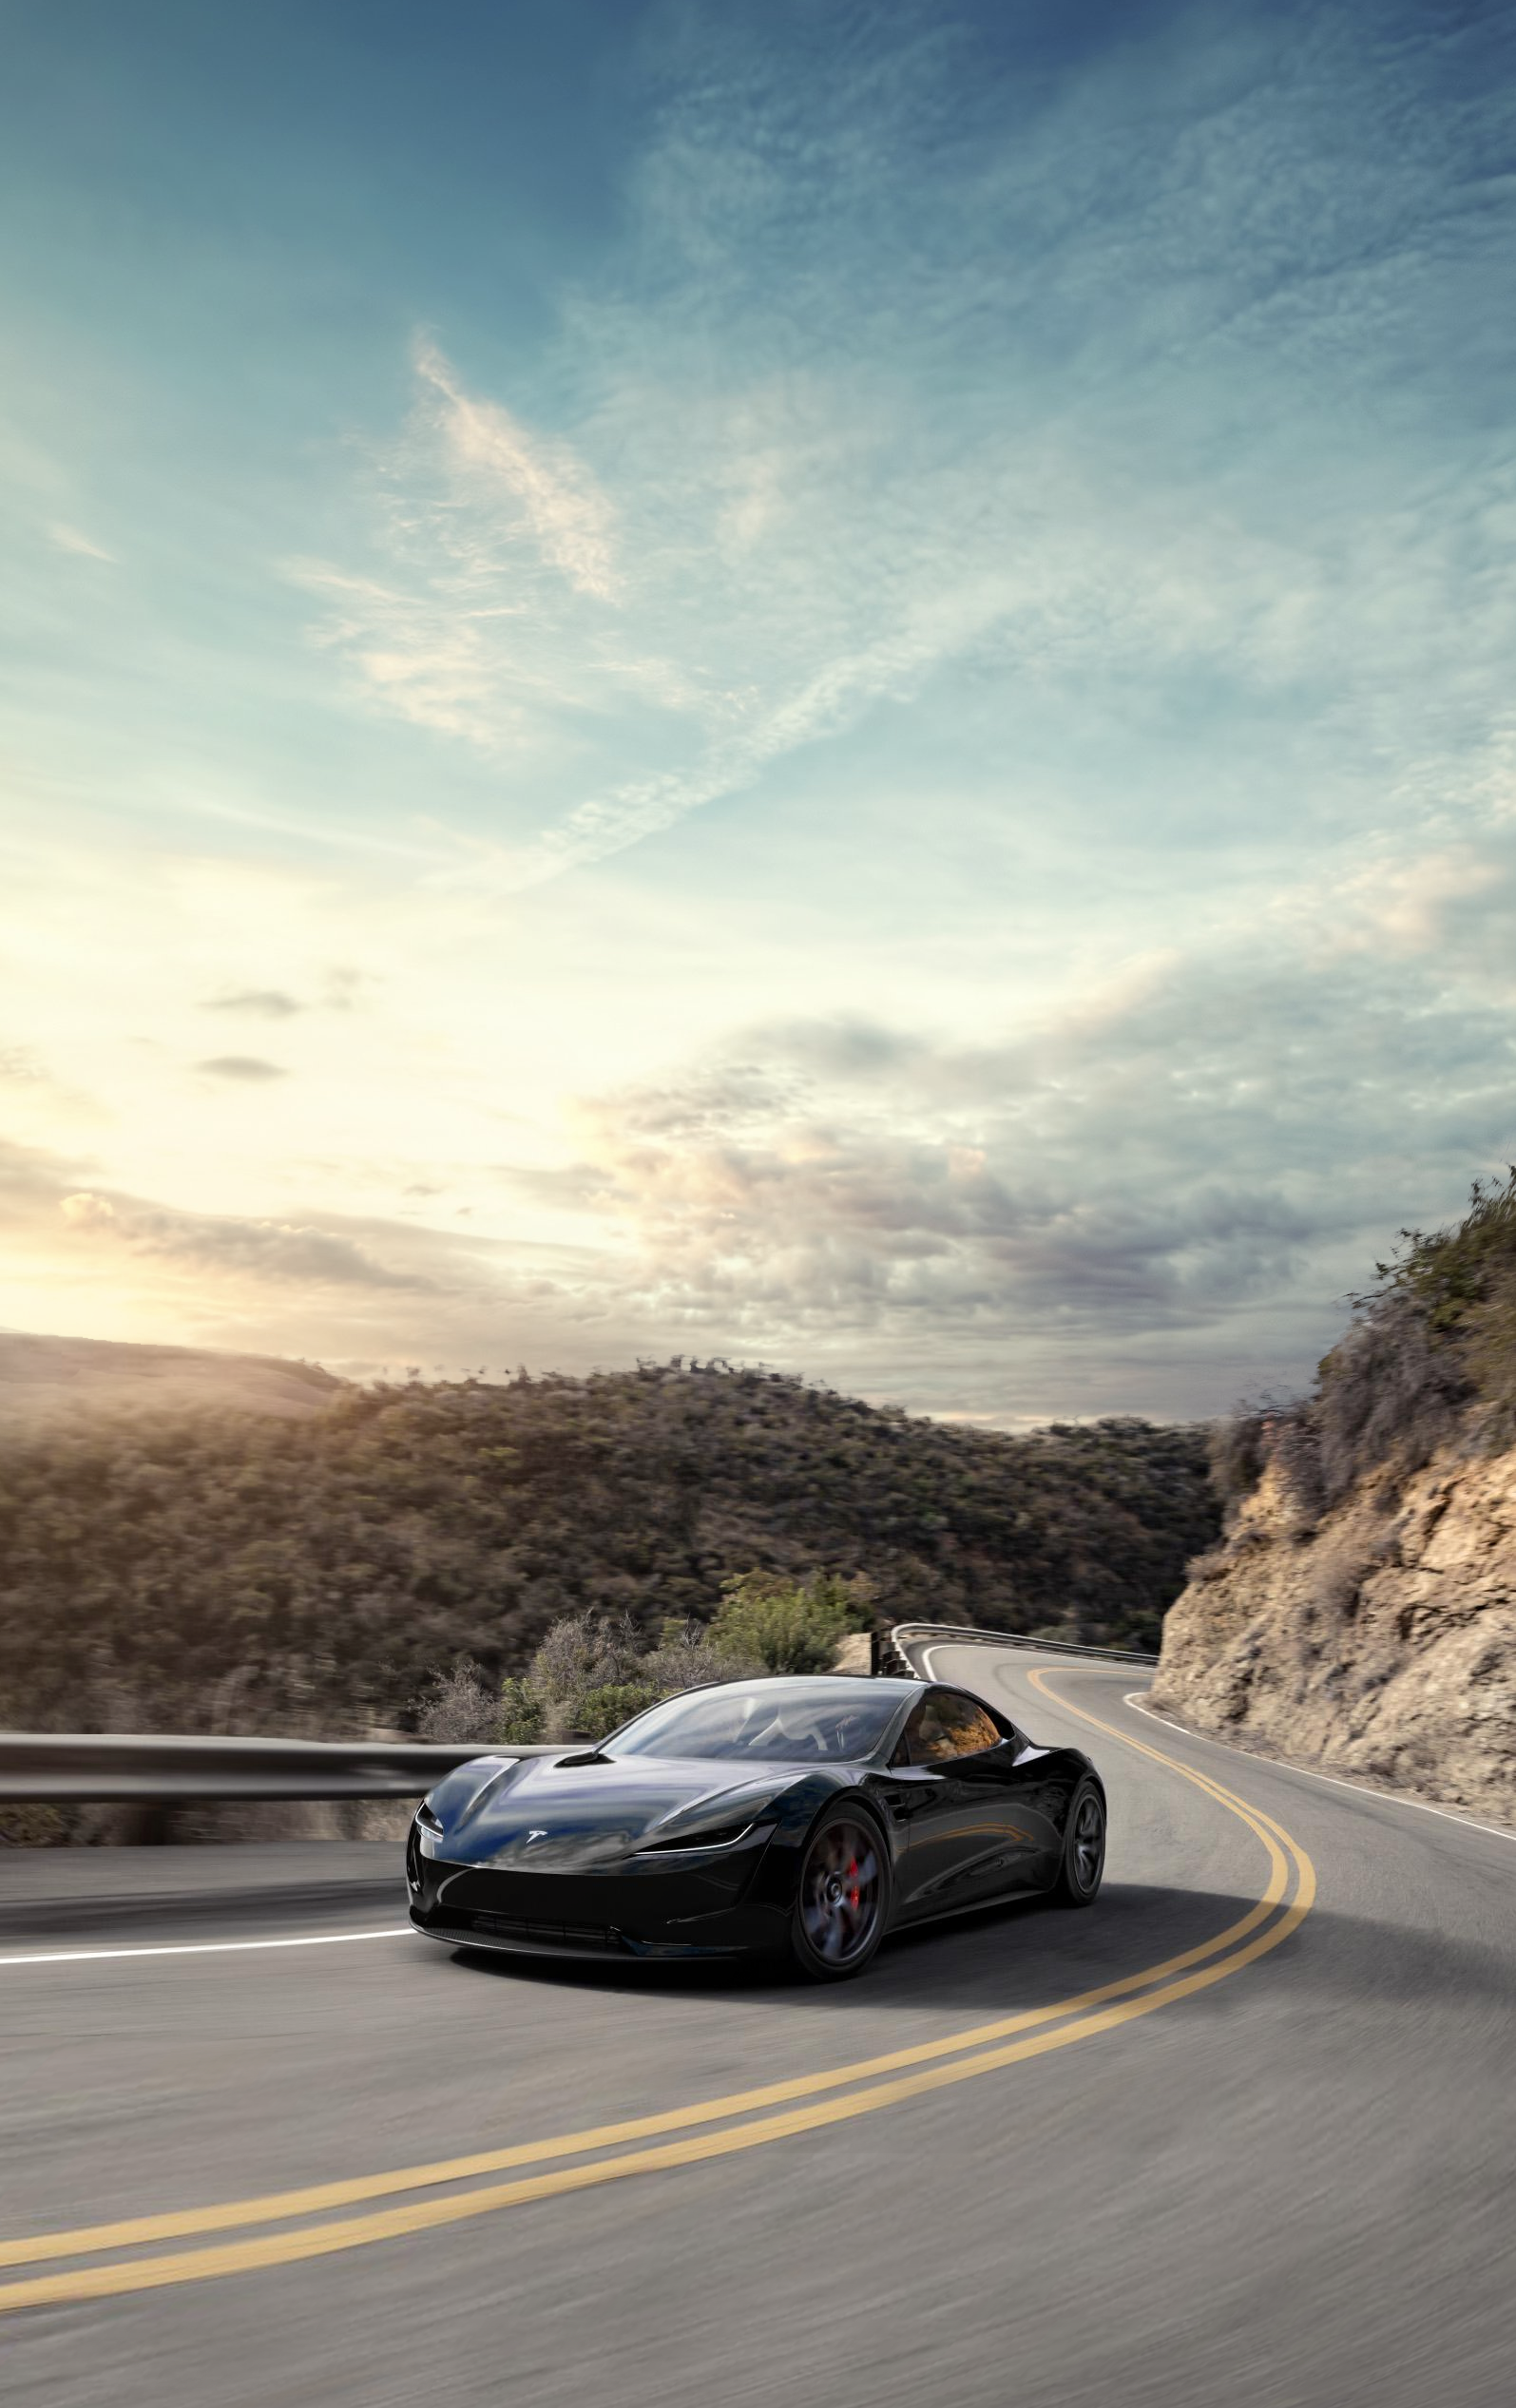 Tesla Phone Wallpapers Top Free Tesla Phone Backgrounds Wallpaperaccess